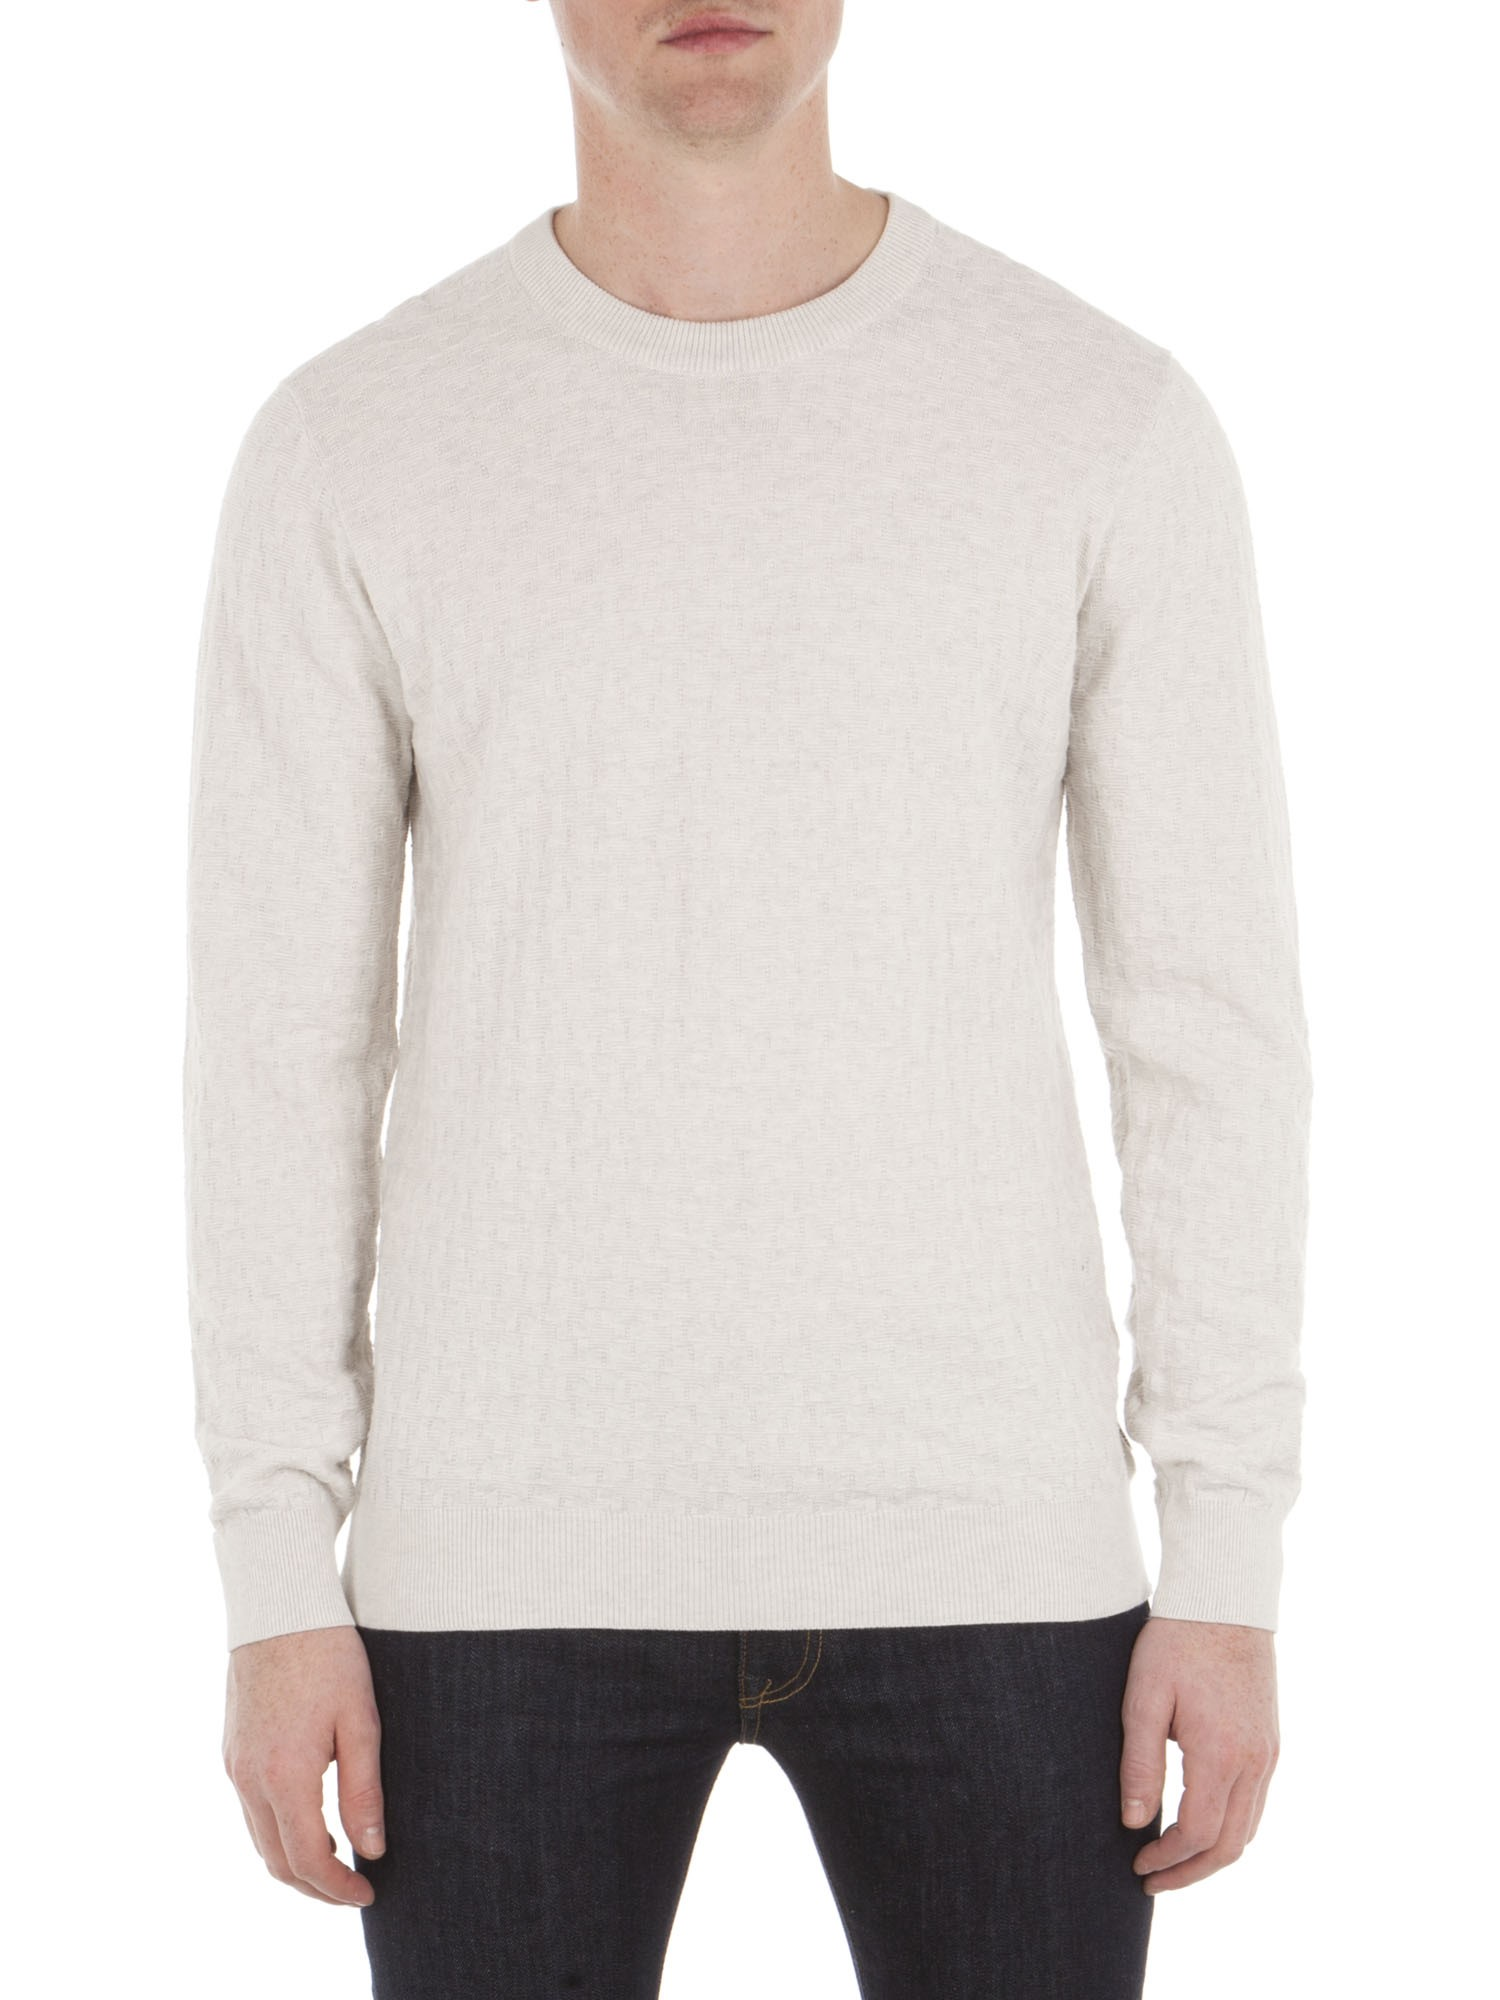 Ben Sherman Off White Textured Knitted Crew Neck Jumper